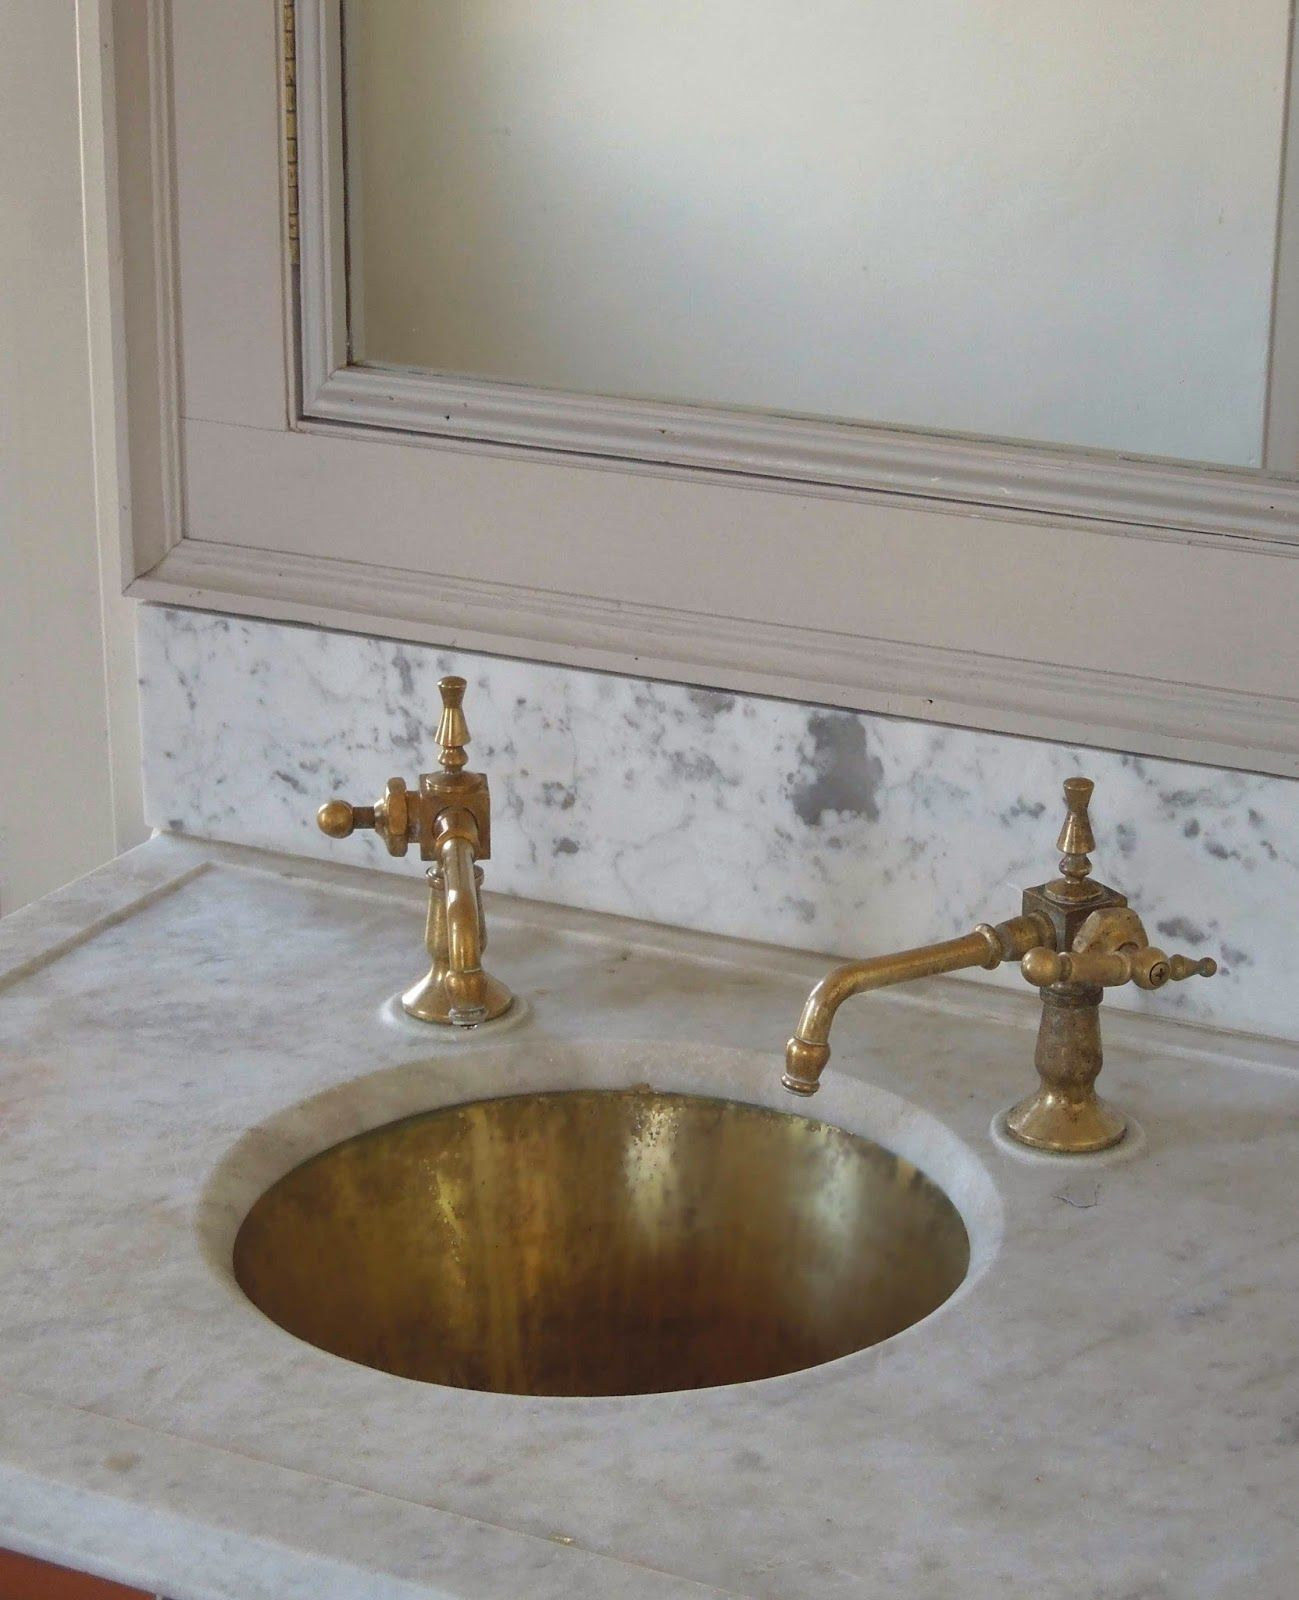 A Tour Inside Our Home Welcome Brass Kitchen Faucet Bathroom